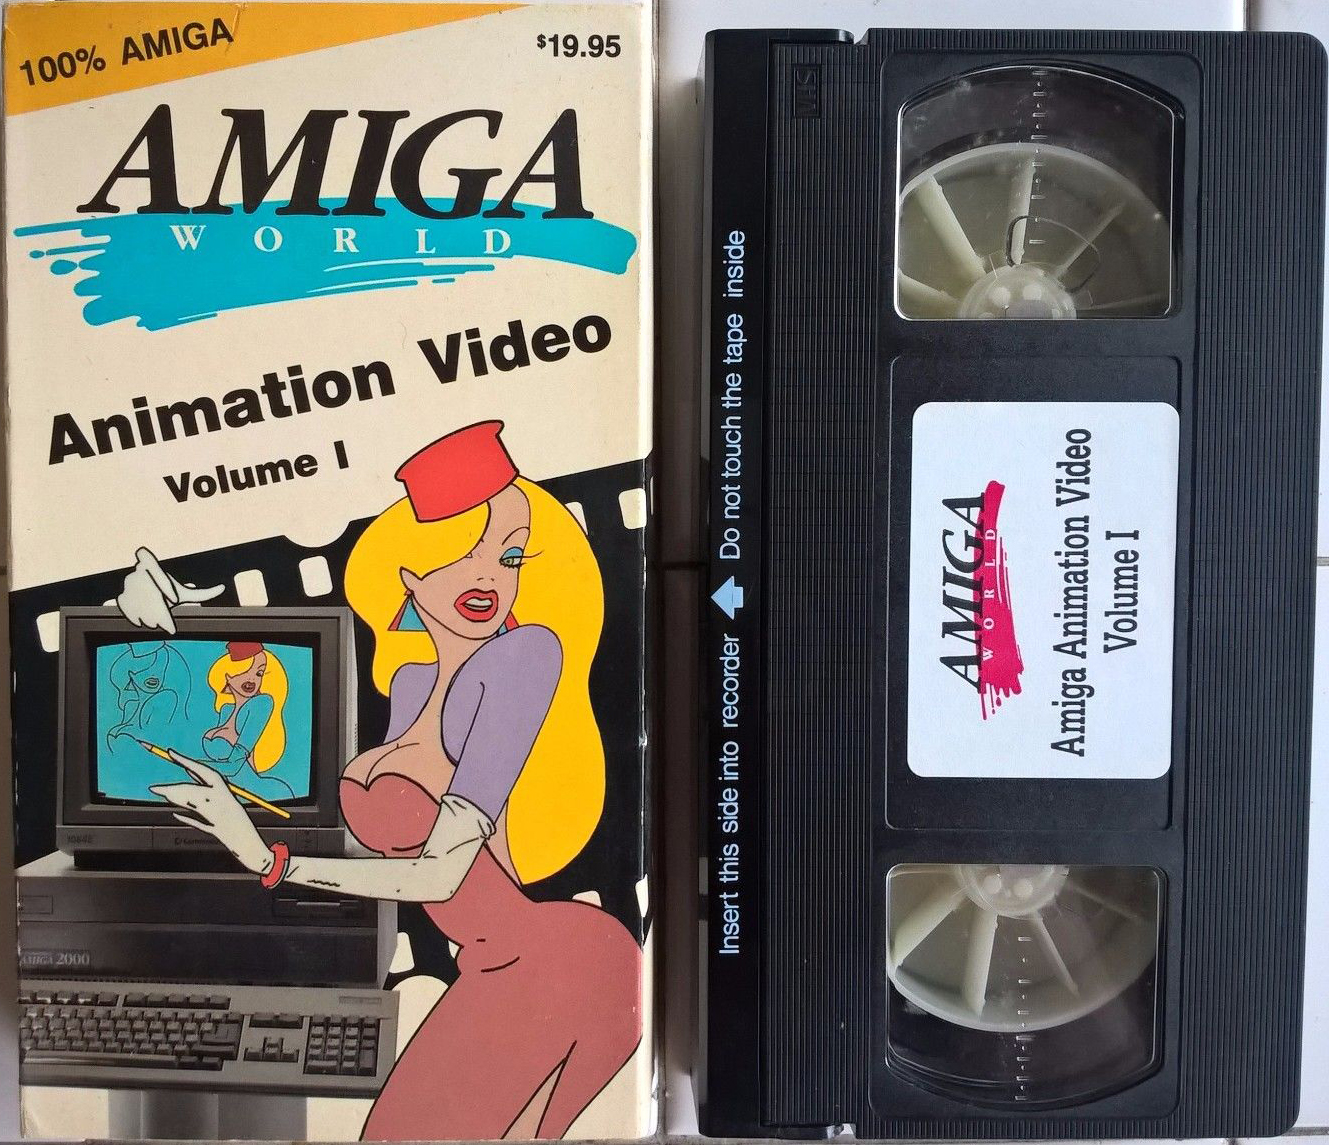 amiga-world-vhs-tape-animation-video-volume-1-front